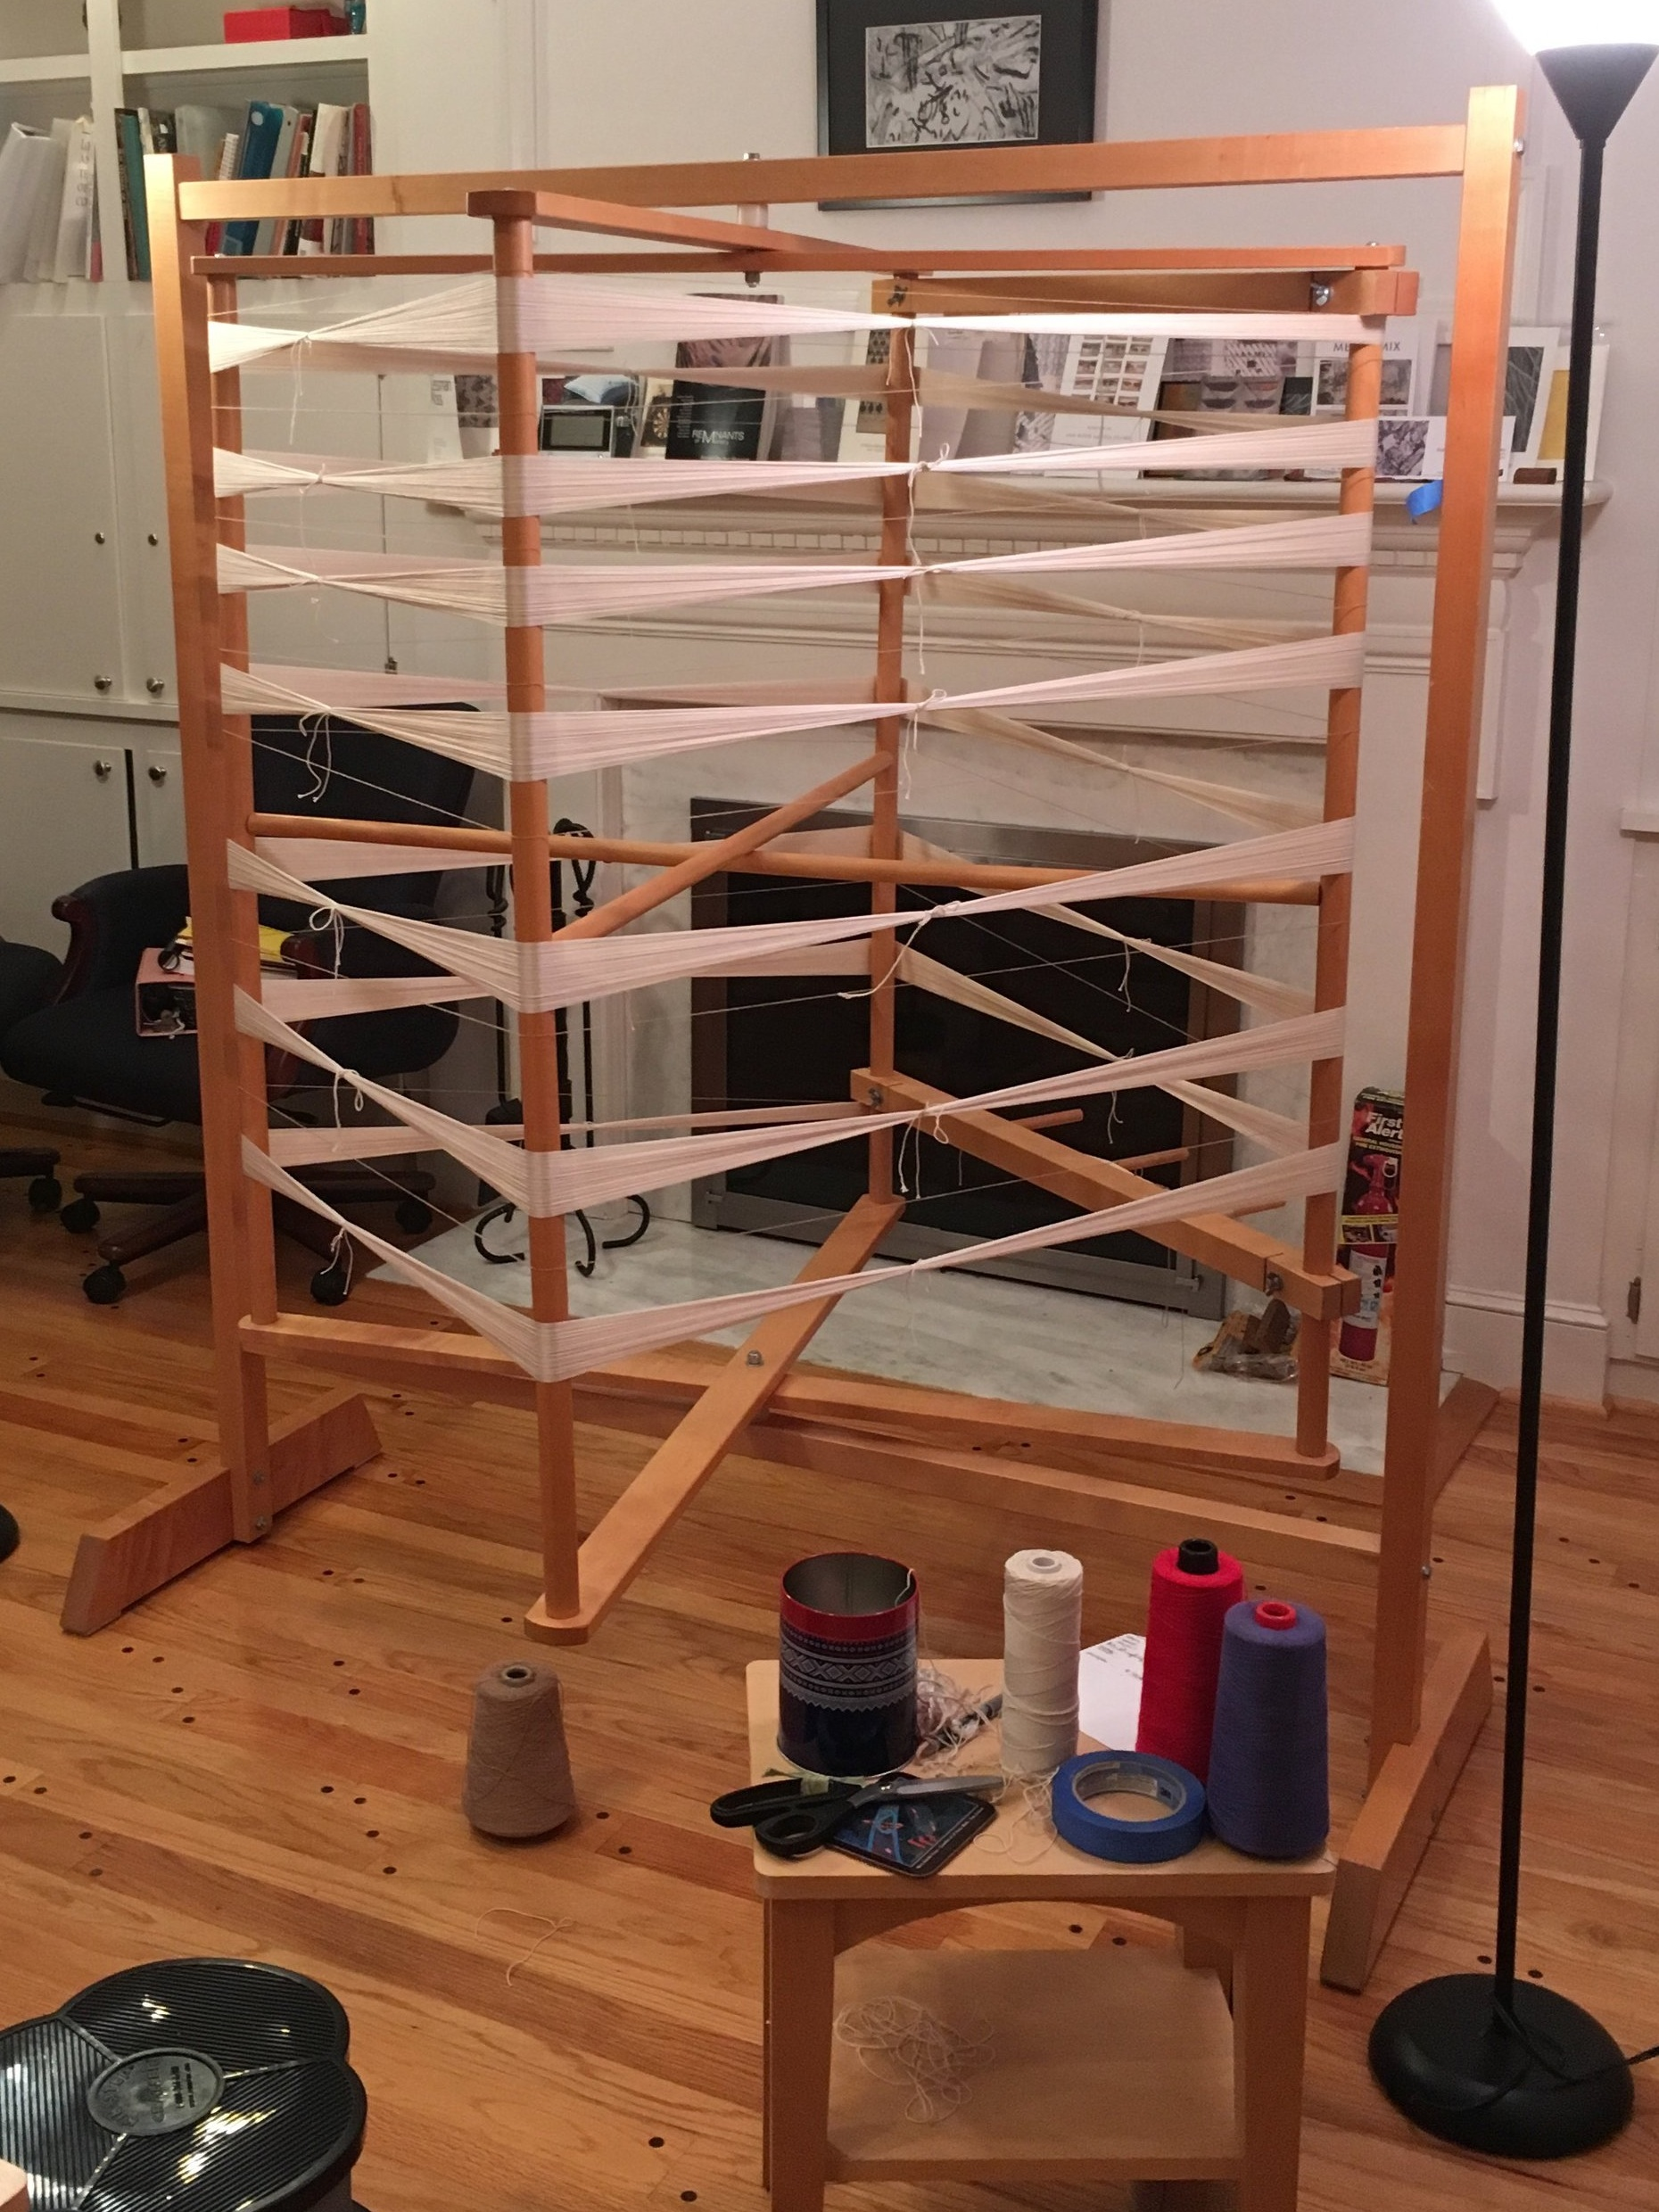 I use this to wind my warps. This holds up to 50 yards. This isn't my own studio set up- but is the best image I have for this wheel. Note the handy table nearby, the stool- the cool can for saving the ties.